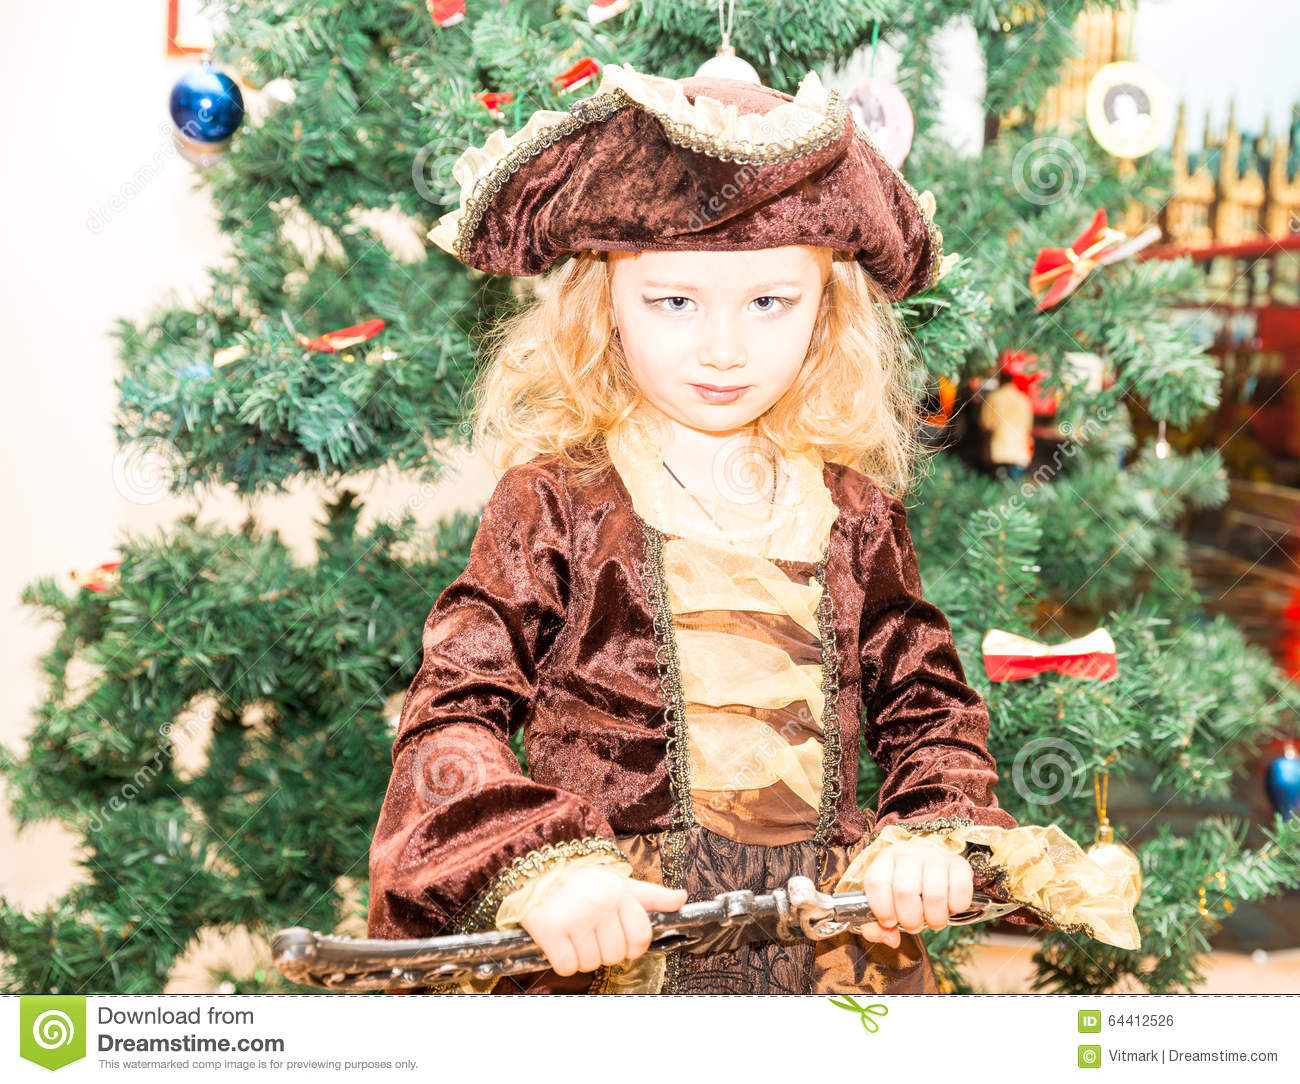 Little Girl Christmas Tree: Little Girl Child Dressed As Pirate For Halloween On